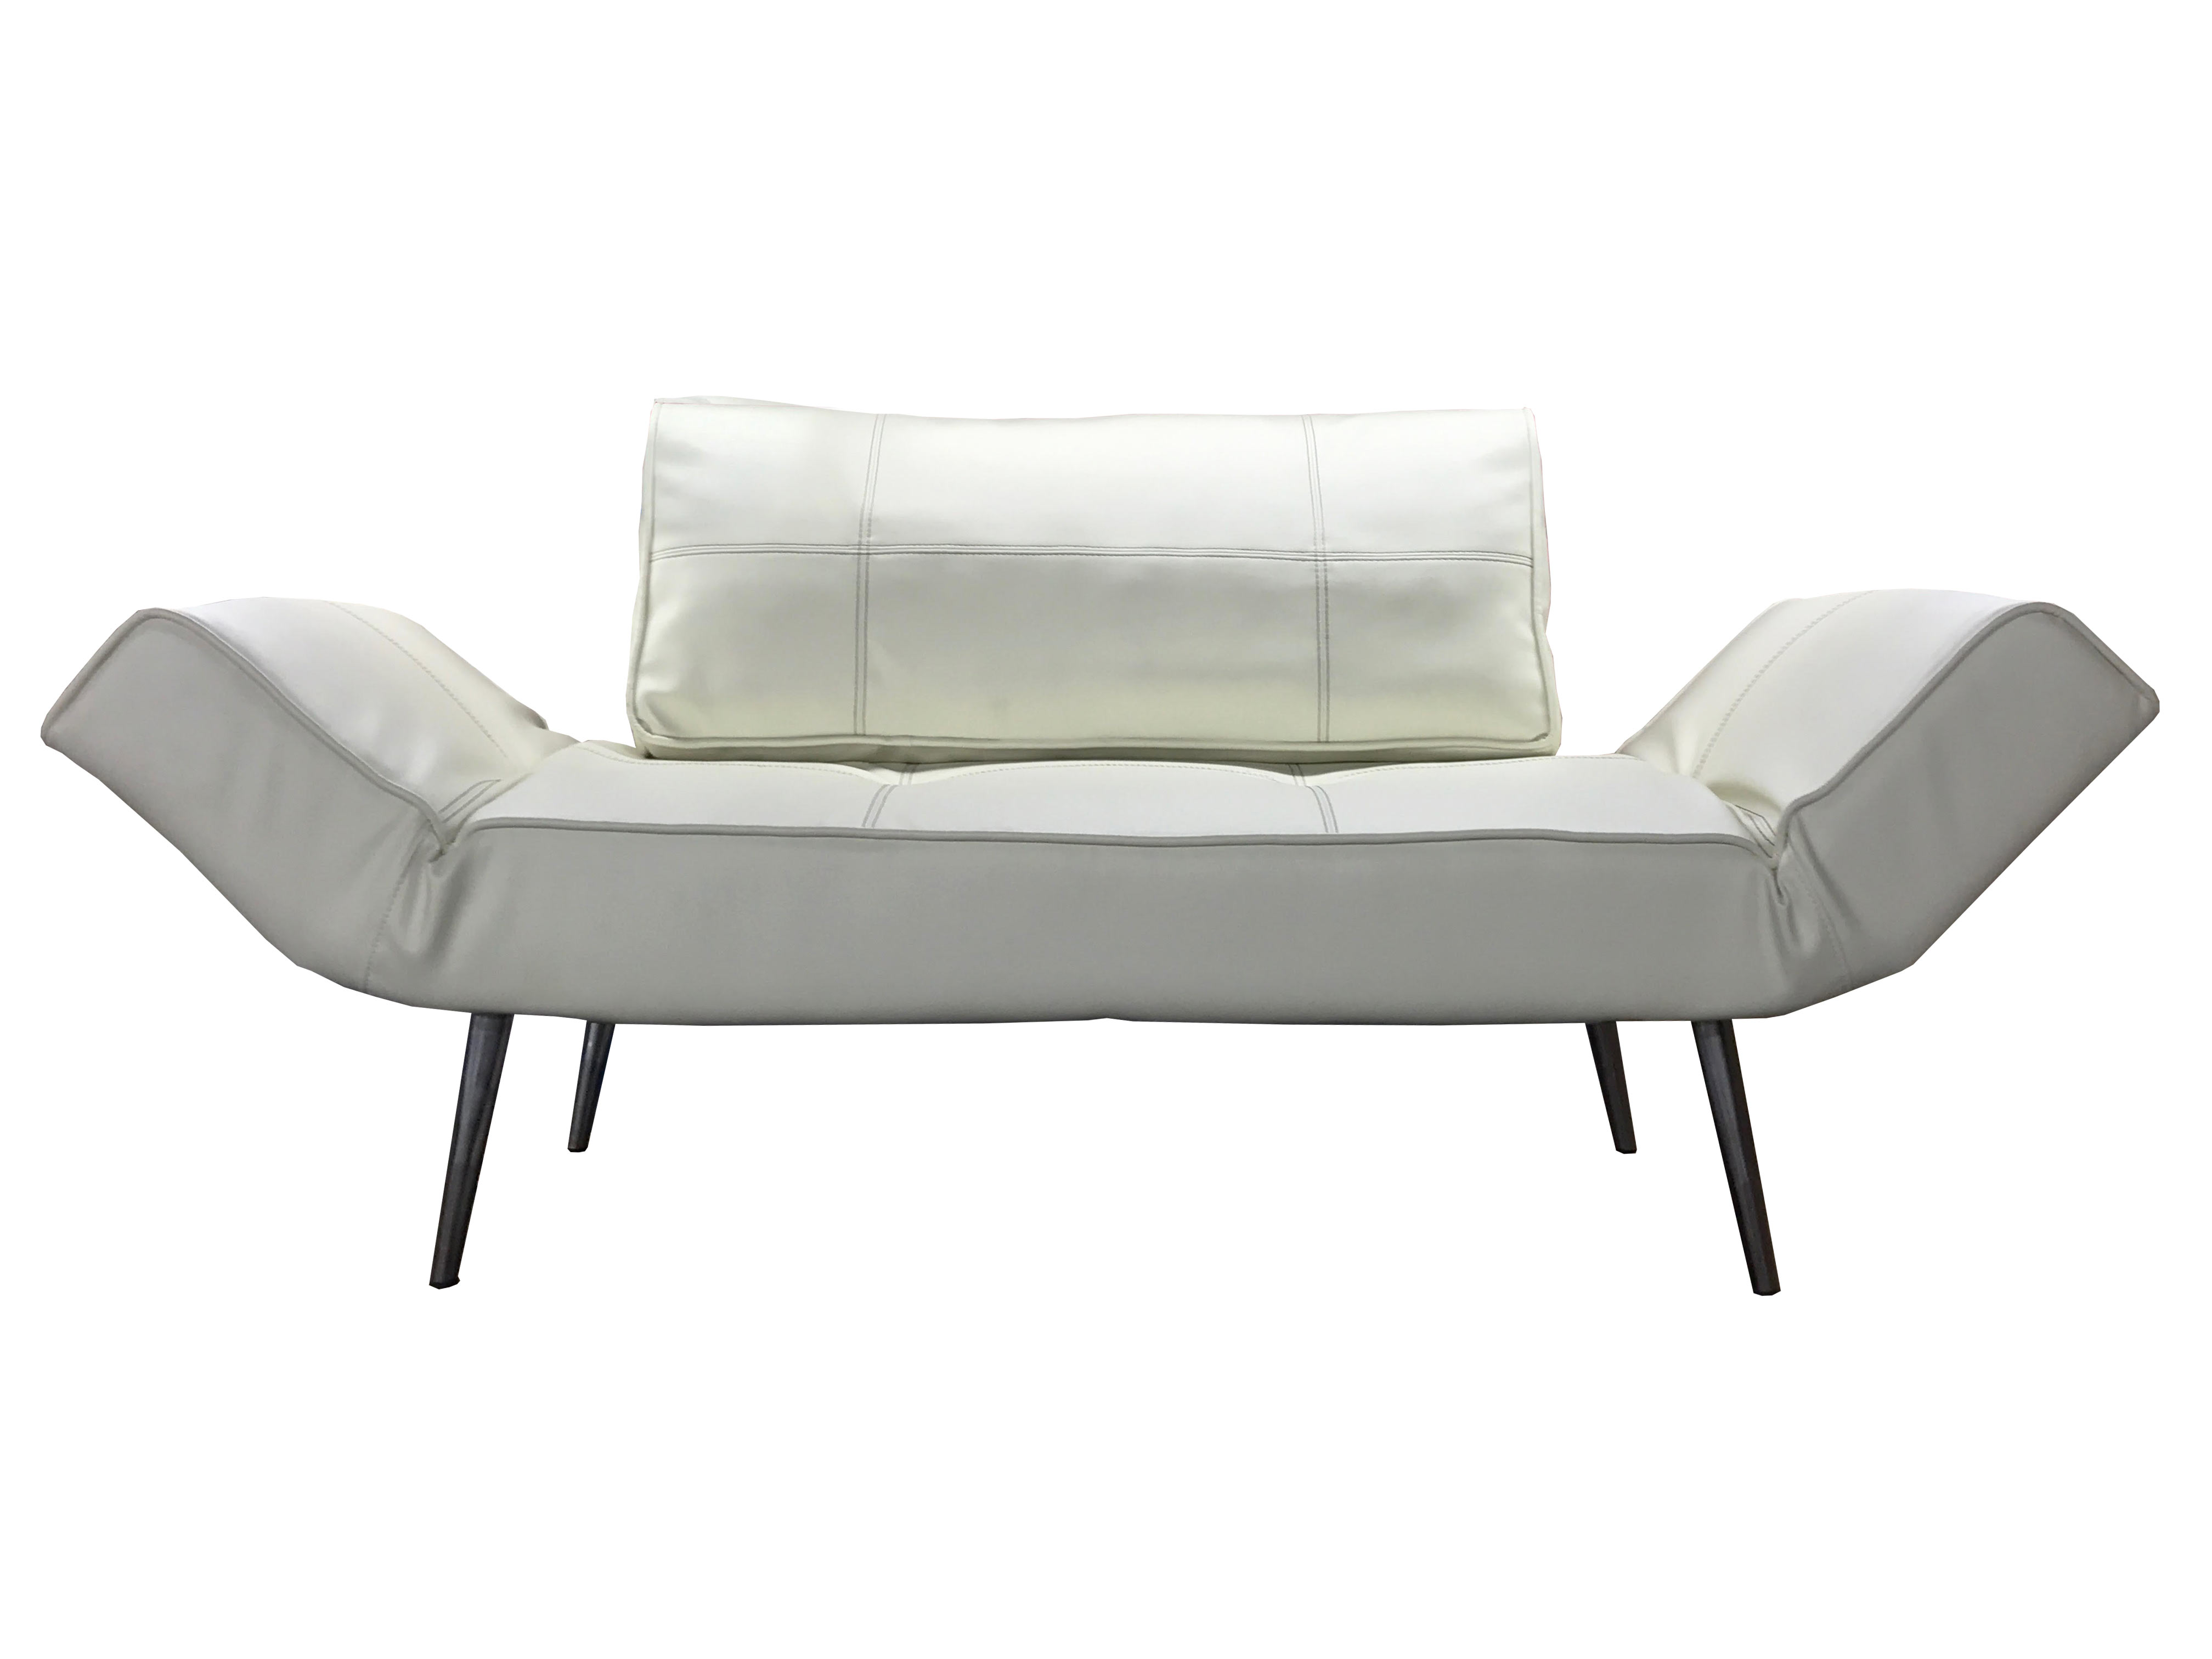 Surprising Corona Sofa Bed Off White By Prestige Furnishings Caraccident5 Cool Chair Designs And Ideas Caraccident5Info